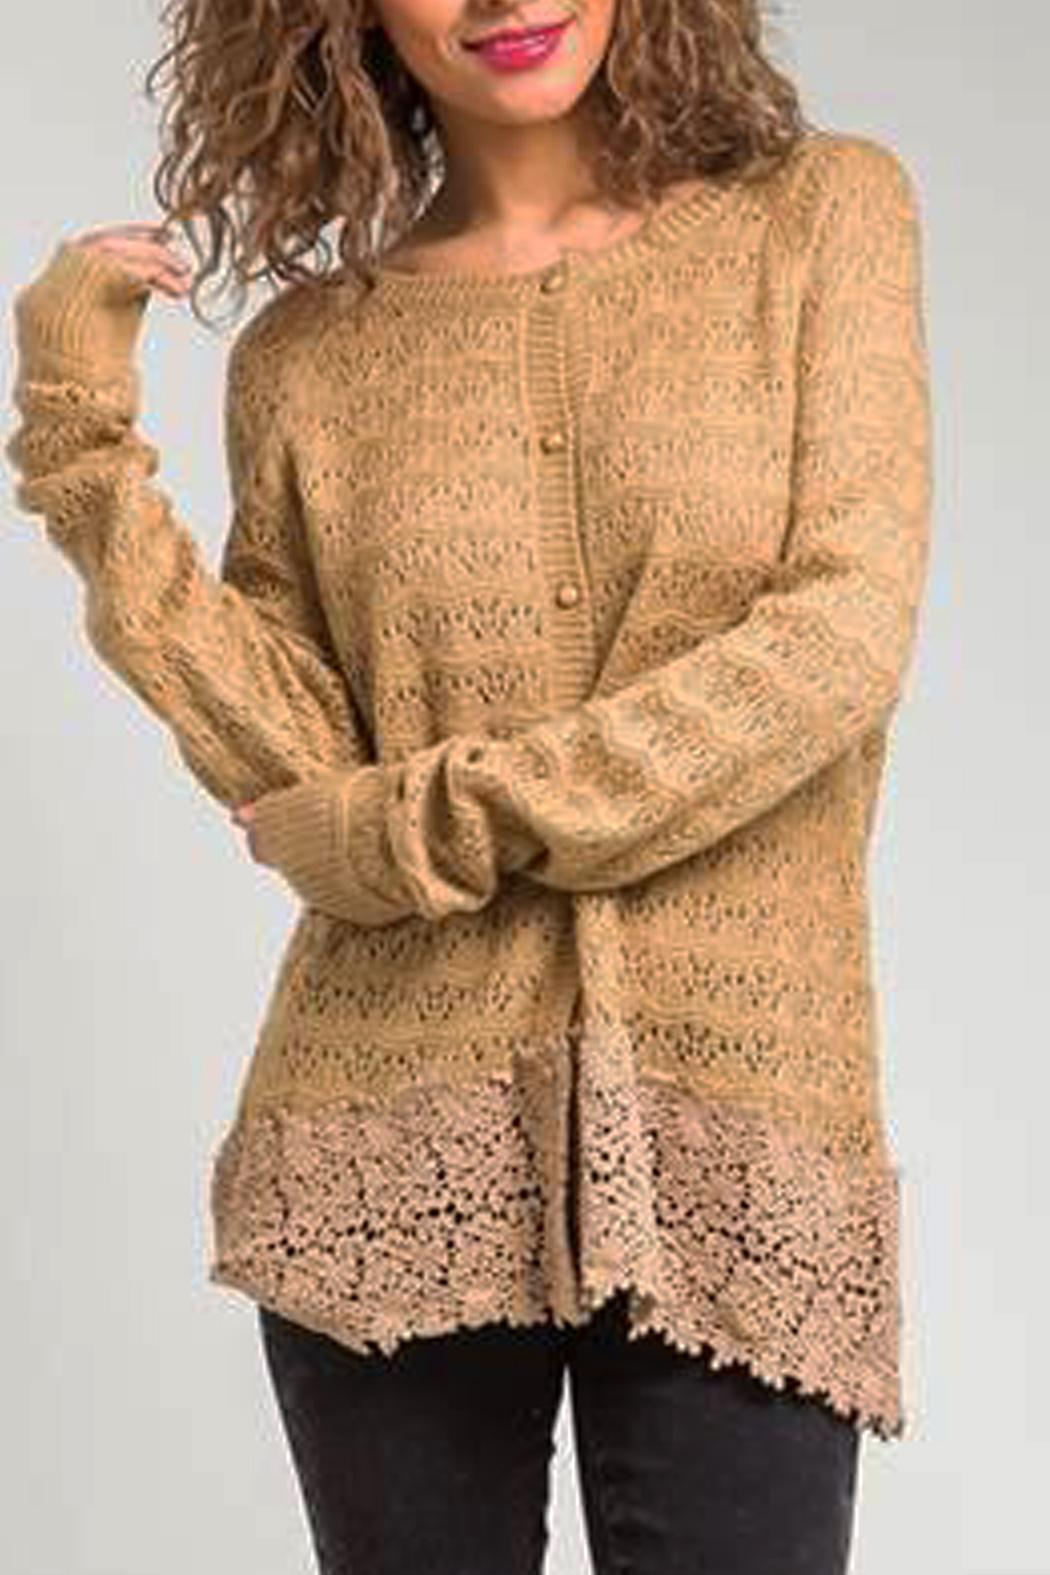 Basil & Lola Cream Lace Cuffed Cardigan - Main Image